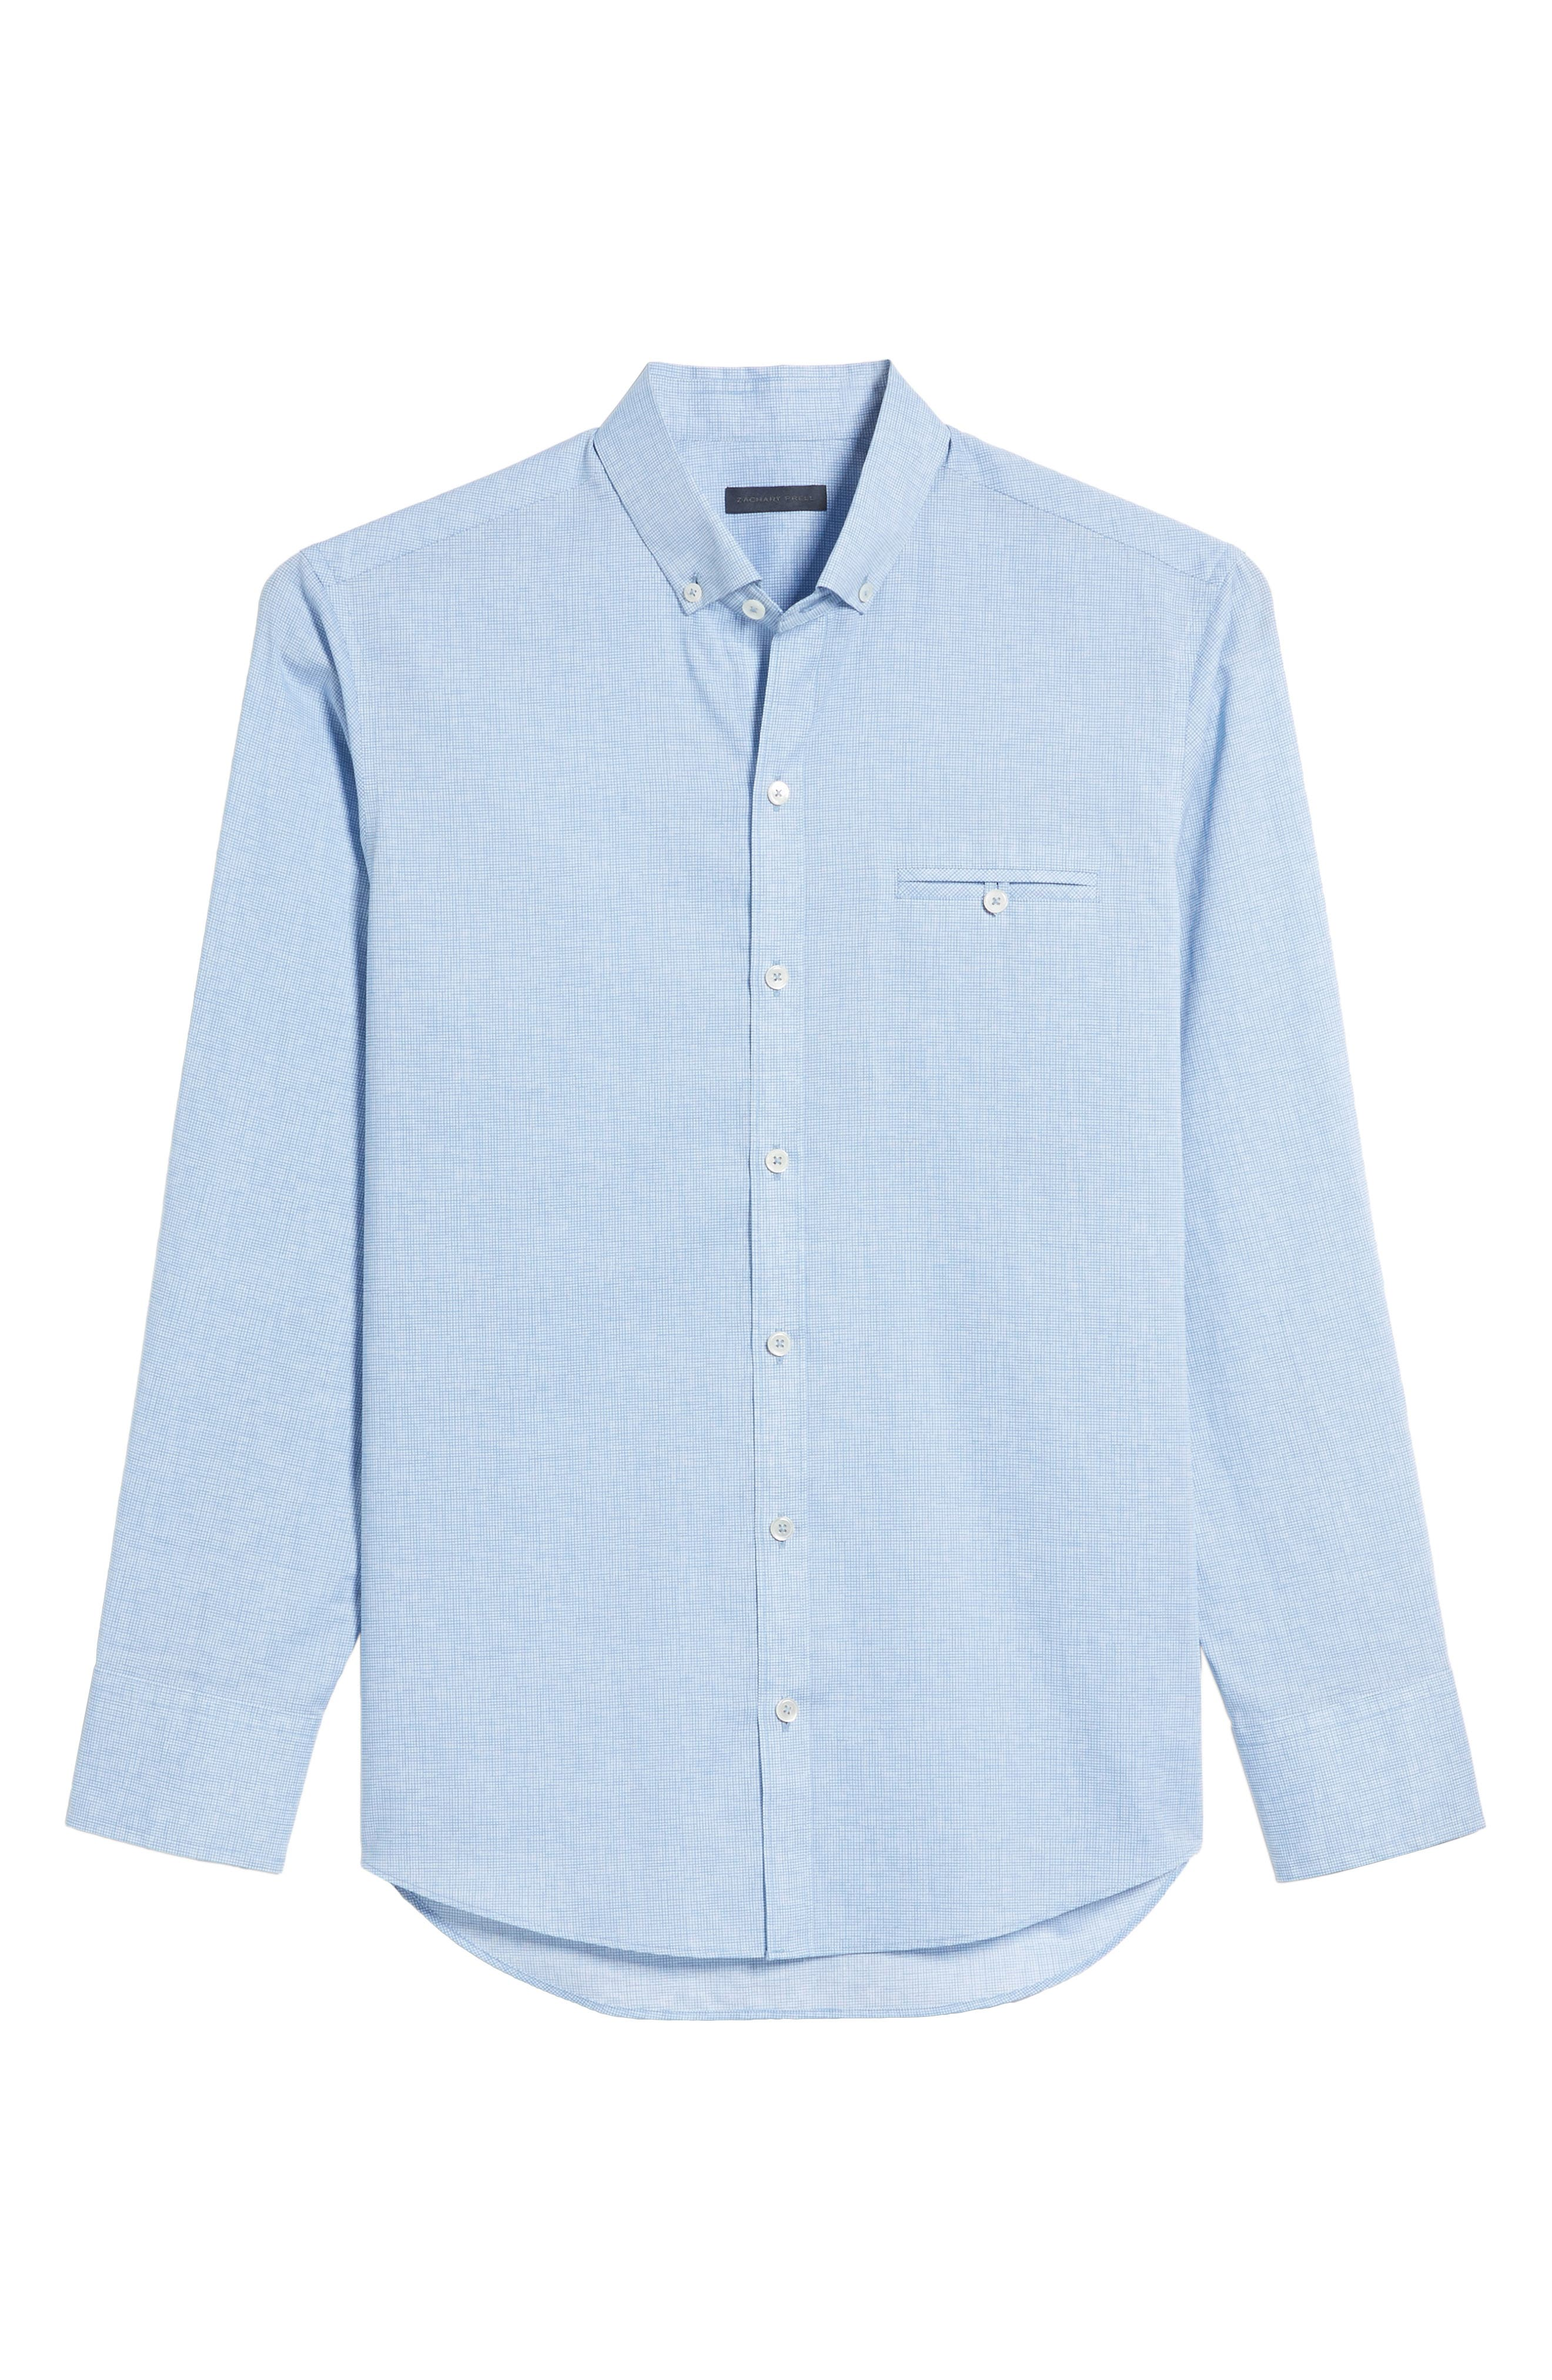 Forrest Textured Woven Sport Shirt,                             Alternate thumbnail 6, color,                             Ice Blue